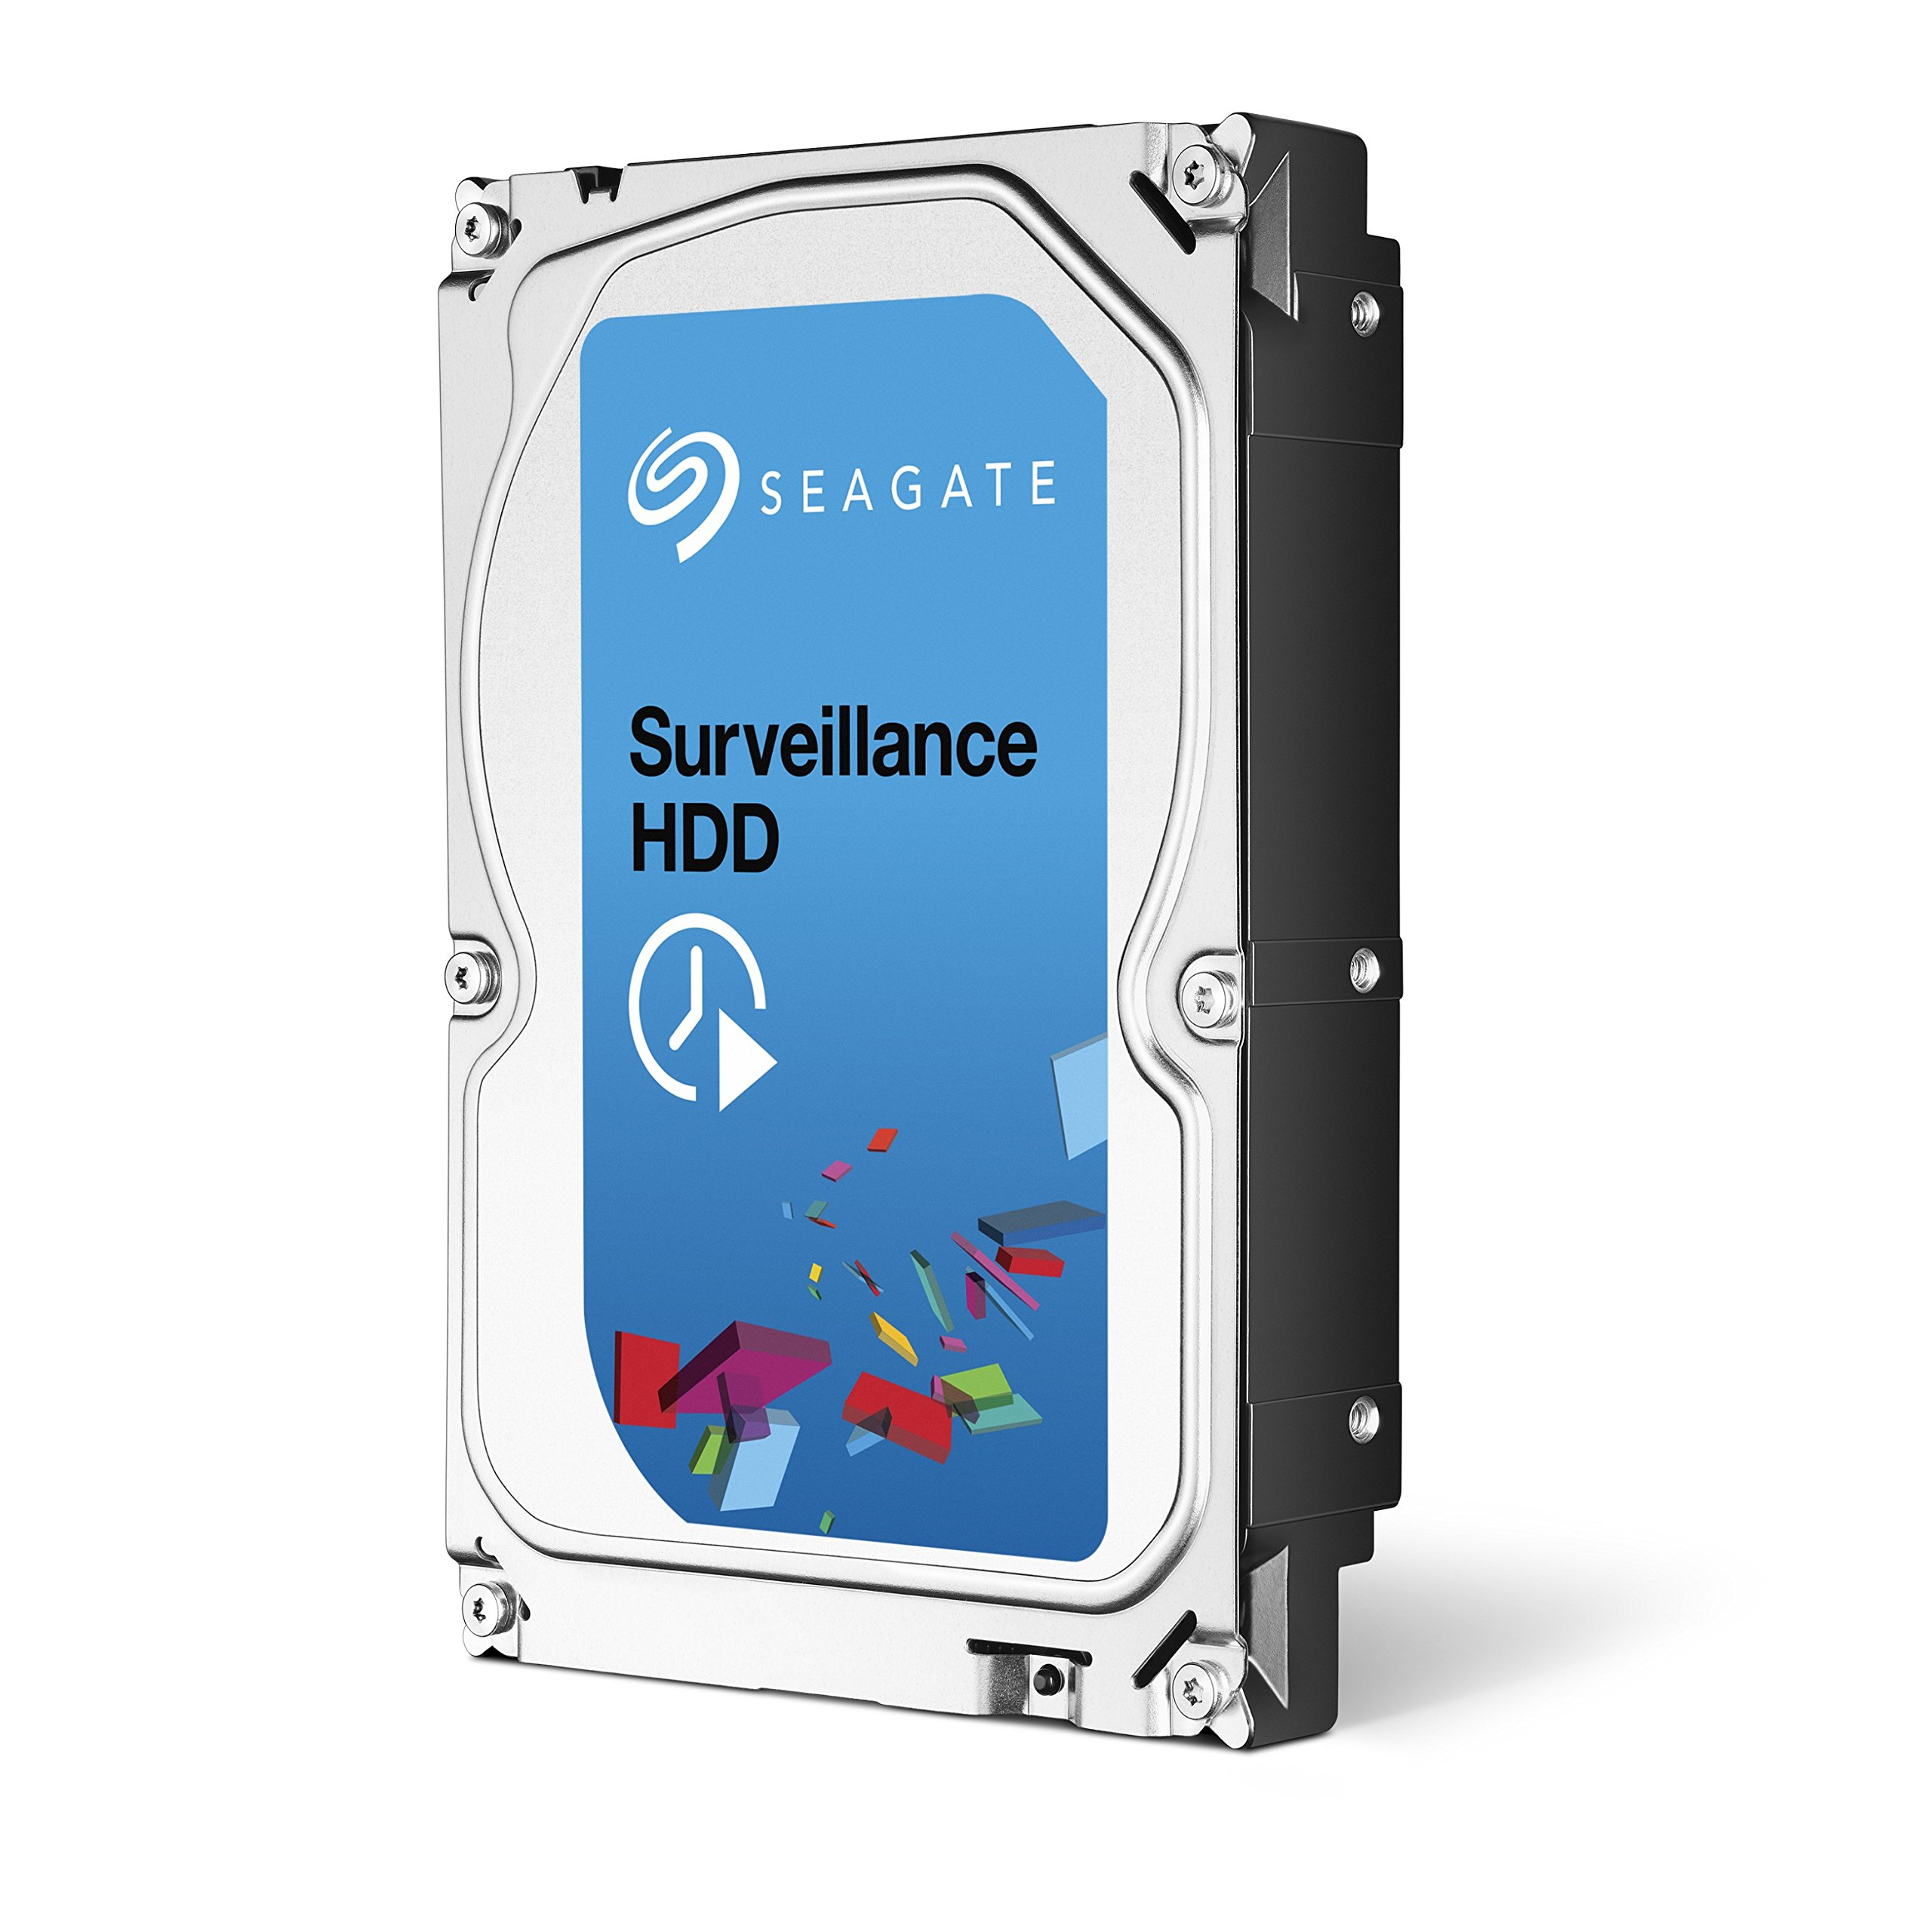 (Old Model) Seagate 4TB Surveillance HDD 6Gb/s Internal Hard Drive (ST4000VX000)